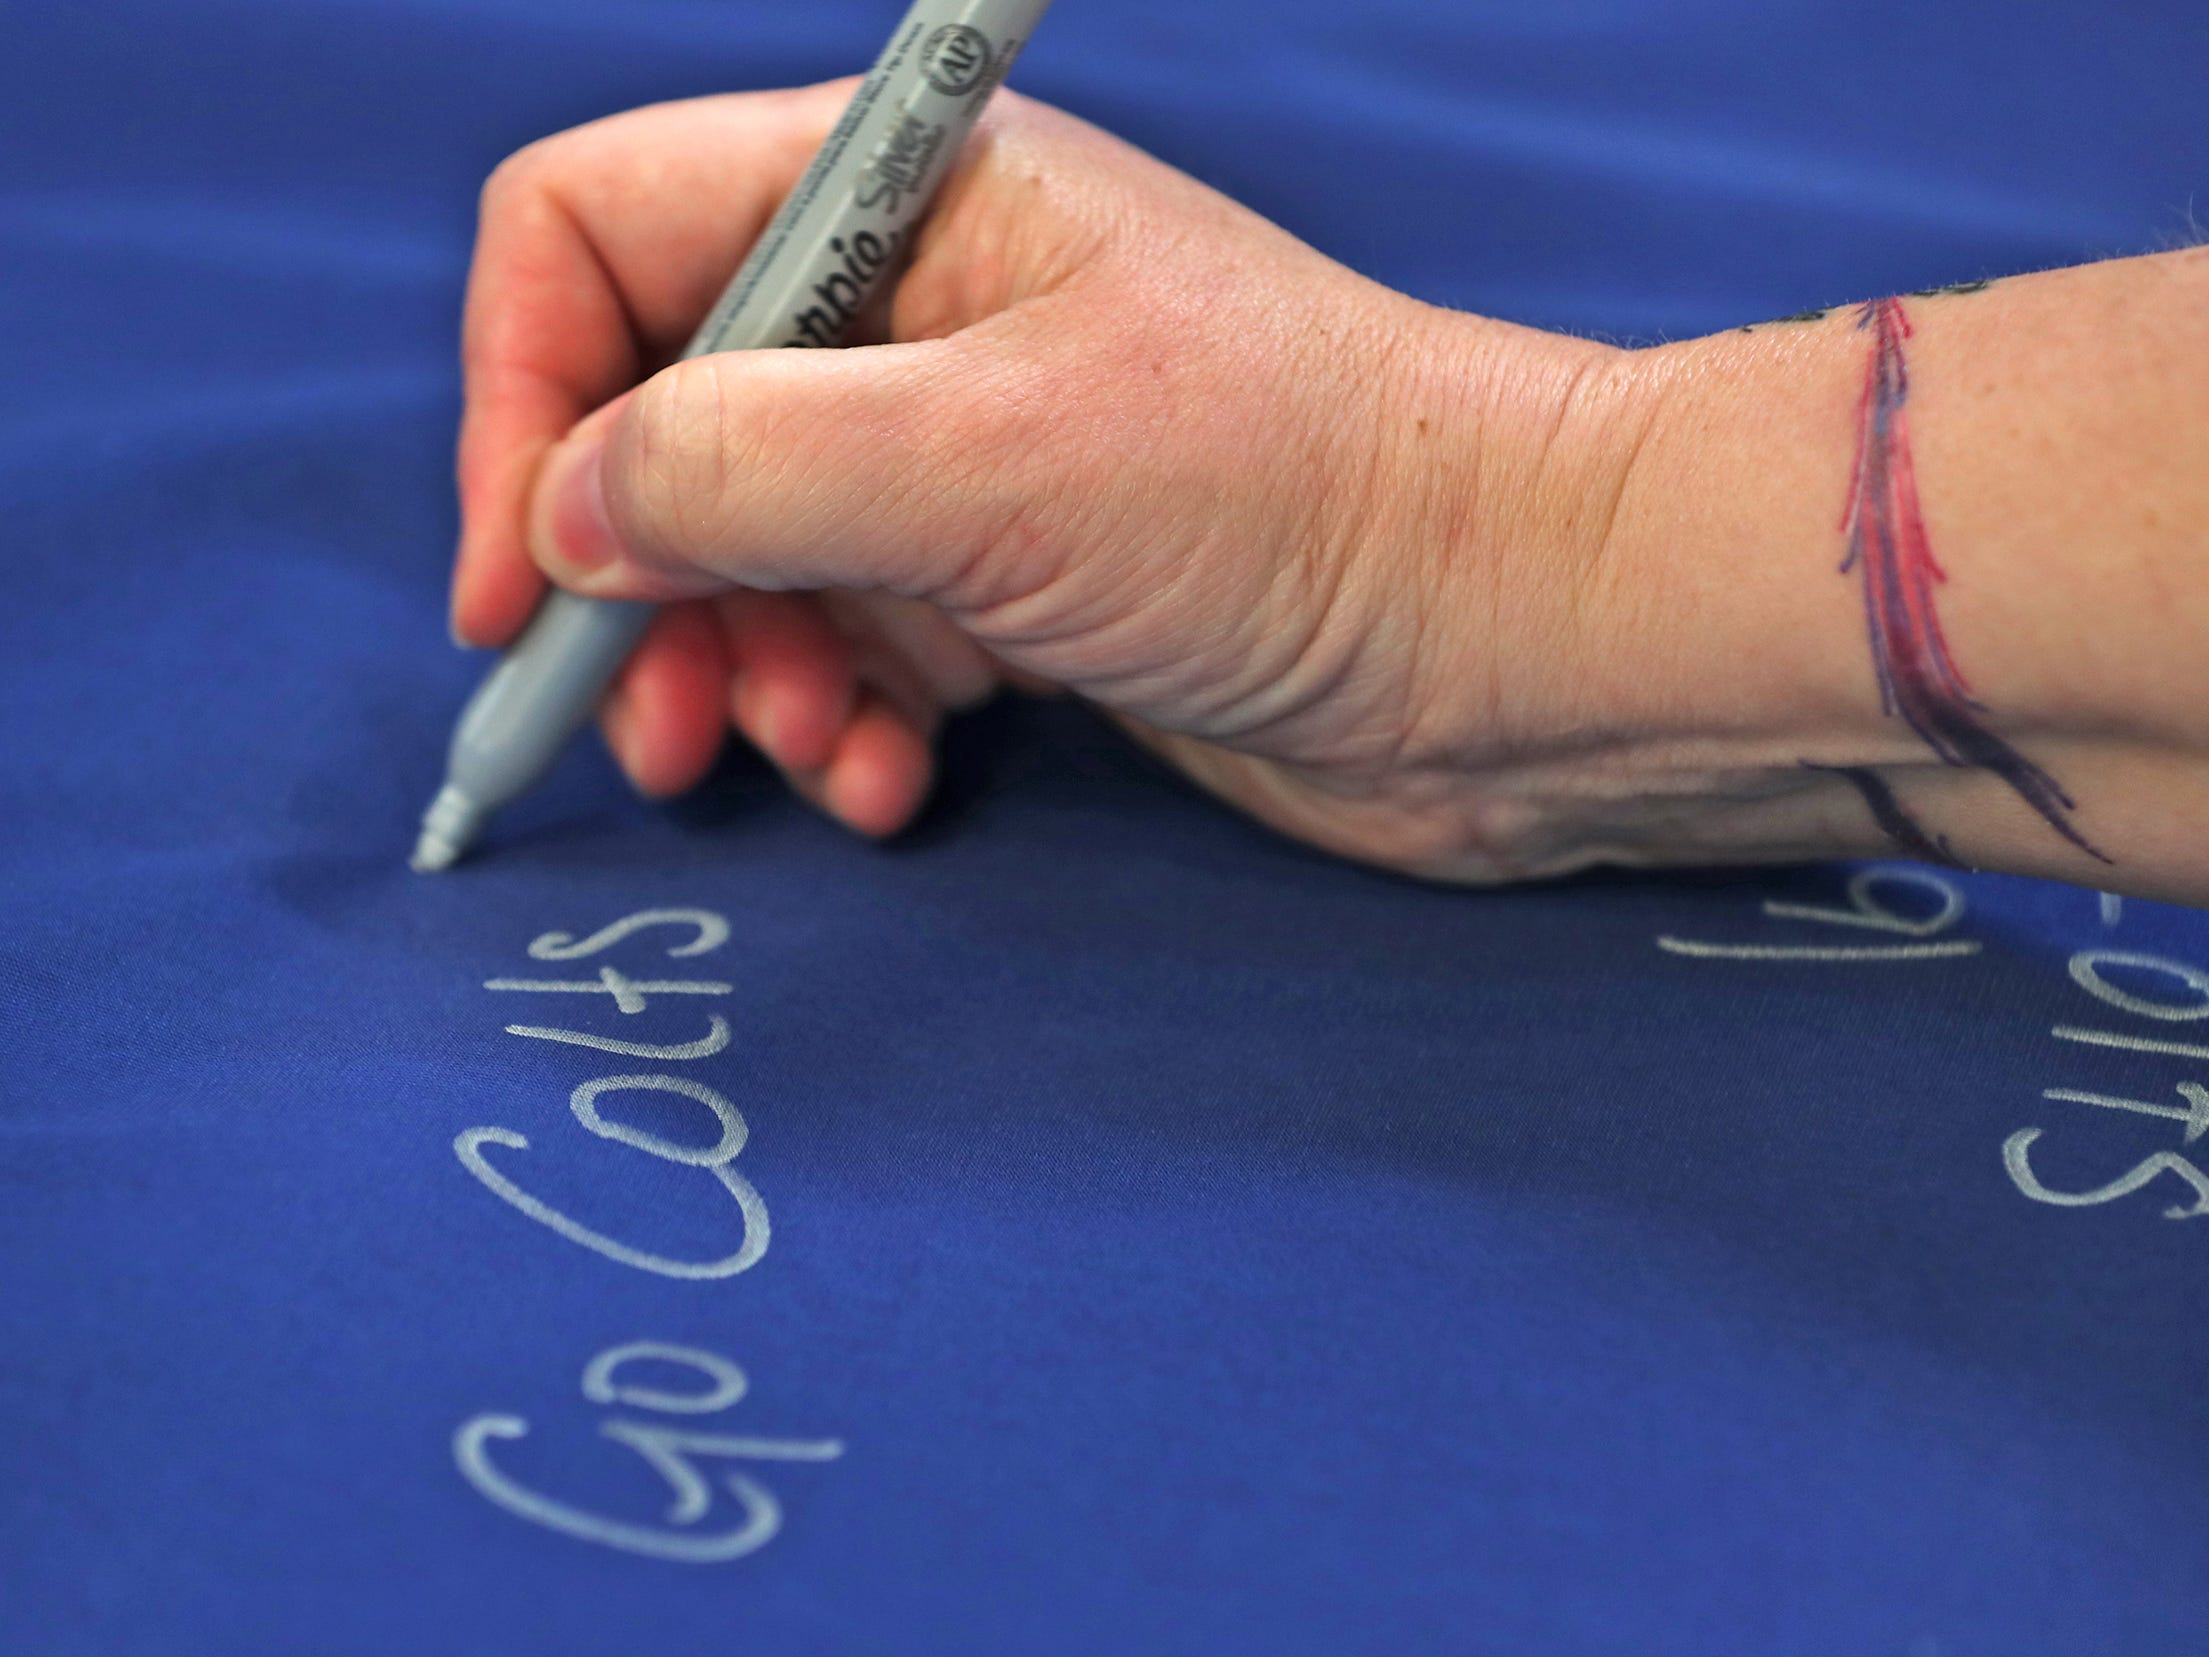 Fans sign a 1-0 banner for the Colts at City Market, Thursday, Jan. 10, 2019.  The banner will be displayed for the team to see at the airport as they head off to their Kansas City playoff game.